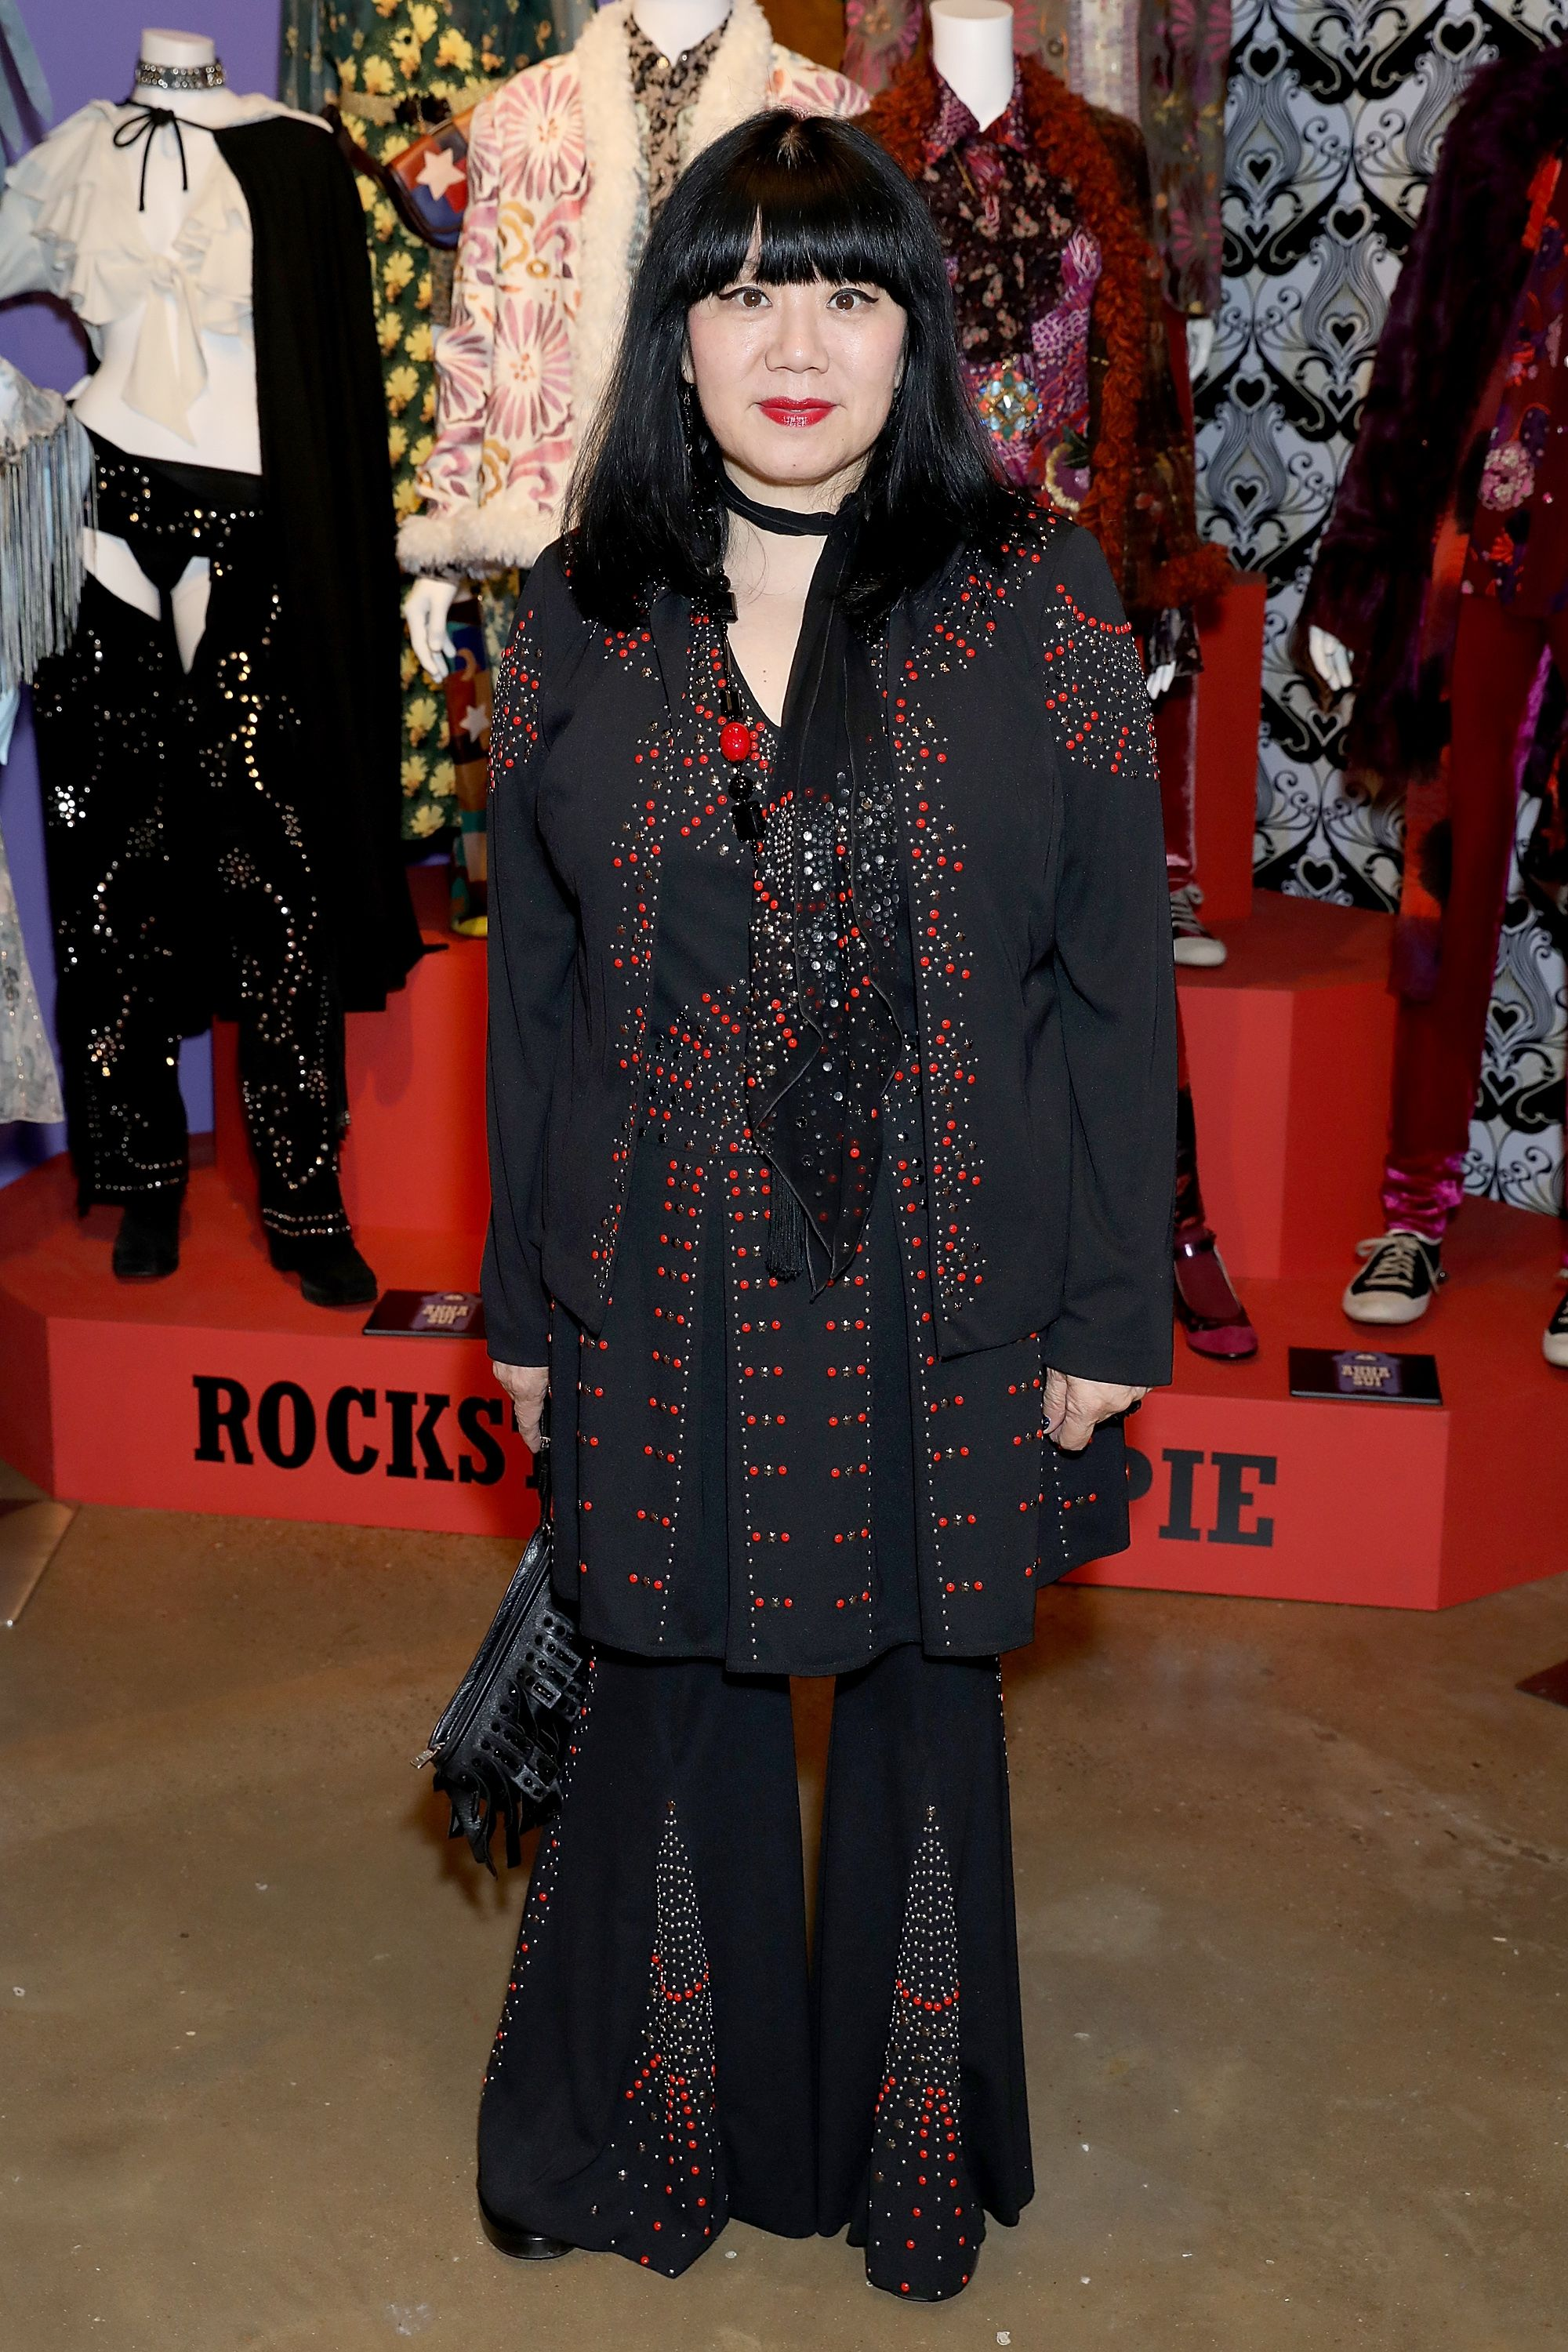 "<p>At the World of Anna Sui Exhibition: Private View at the Fashion and Textile Museum on May 25, 2017 in London<span class=""redactor-invisible-space"" data-verified=""redactor"" data-redactor-tag=""span"" data-redactor-class=""redactor-invisible-space""></span>. </p>"